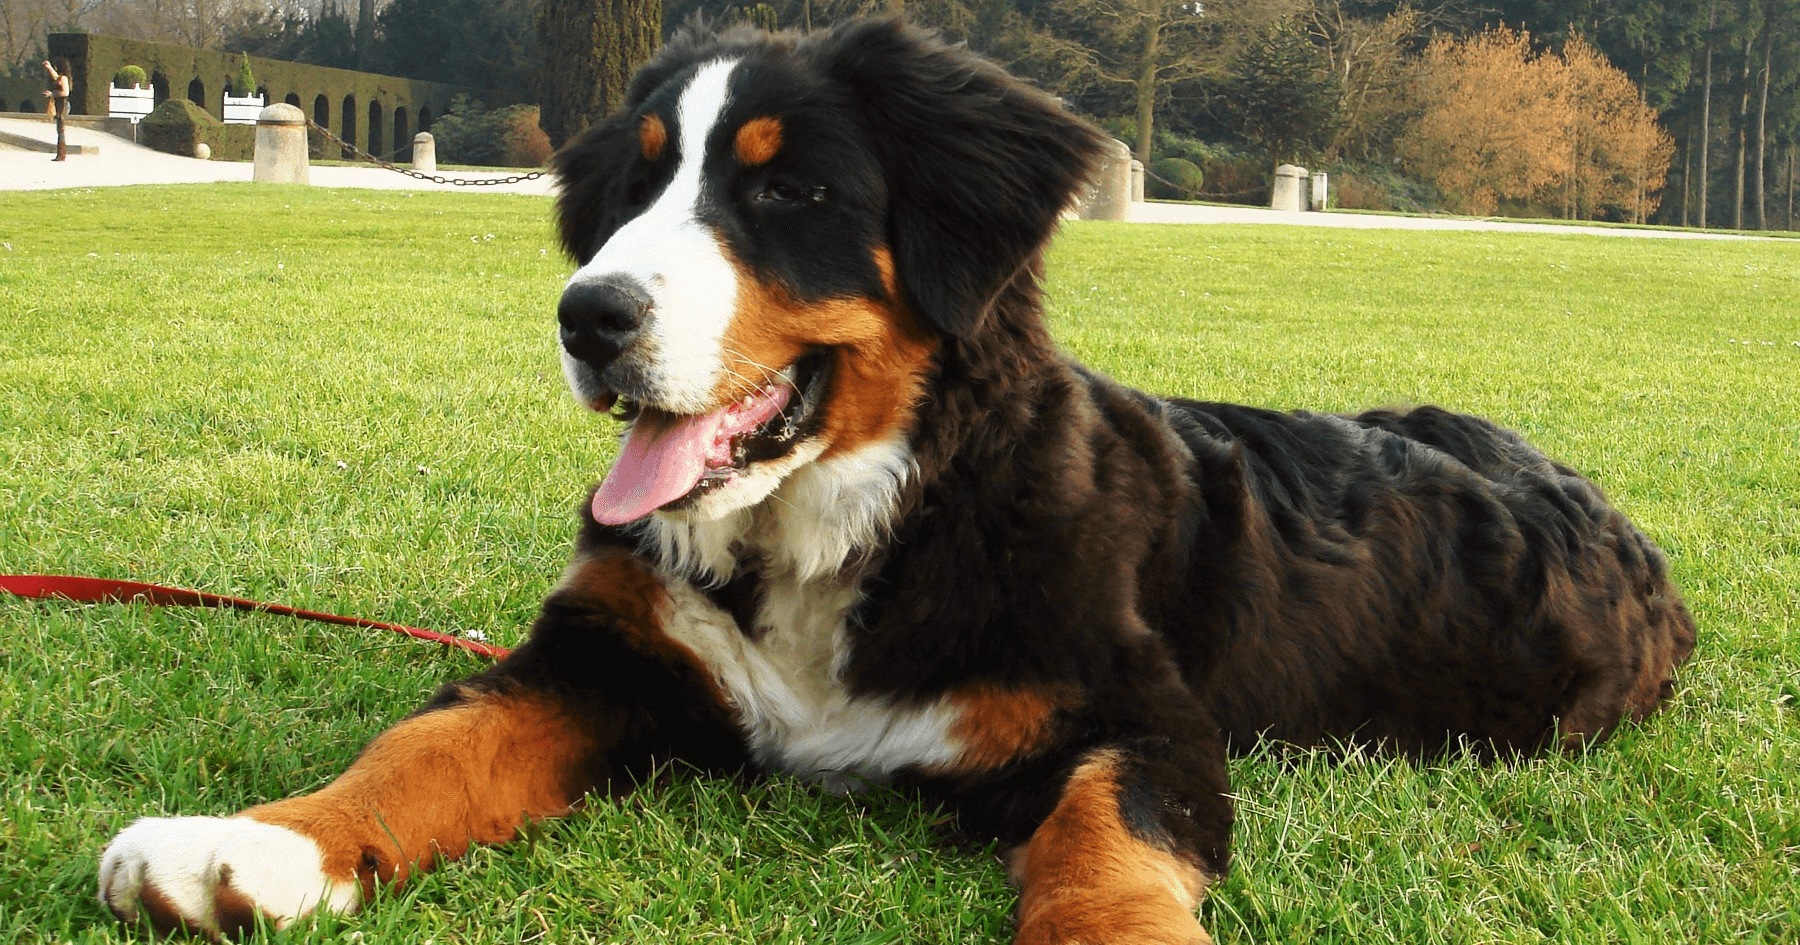 What You Should Know About The Bernice Mountain Dog